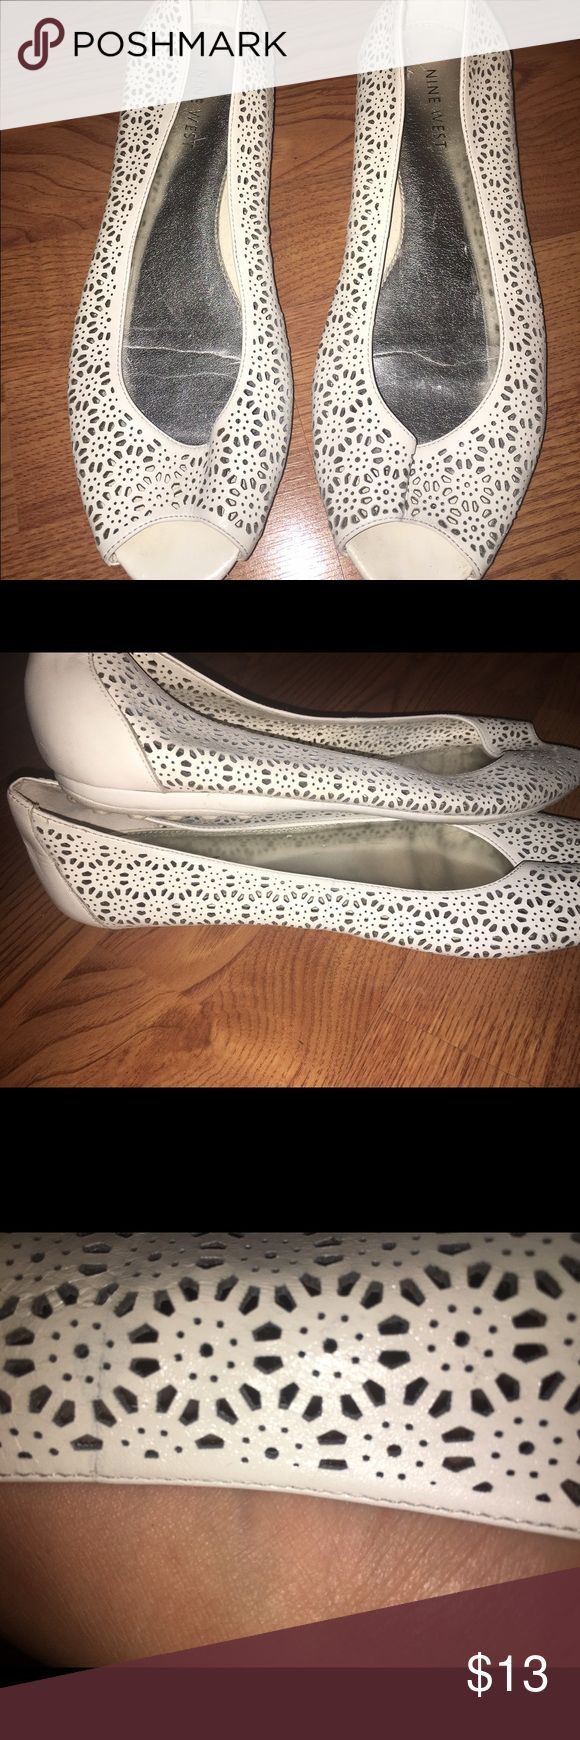 Nine West Peep Toe flats Very cute & comfy! Worn a few times.Priced to sell! I love offers & possible trades for certain items  Nine West Shoes Flats & Loafers